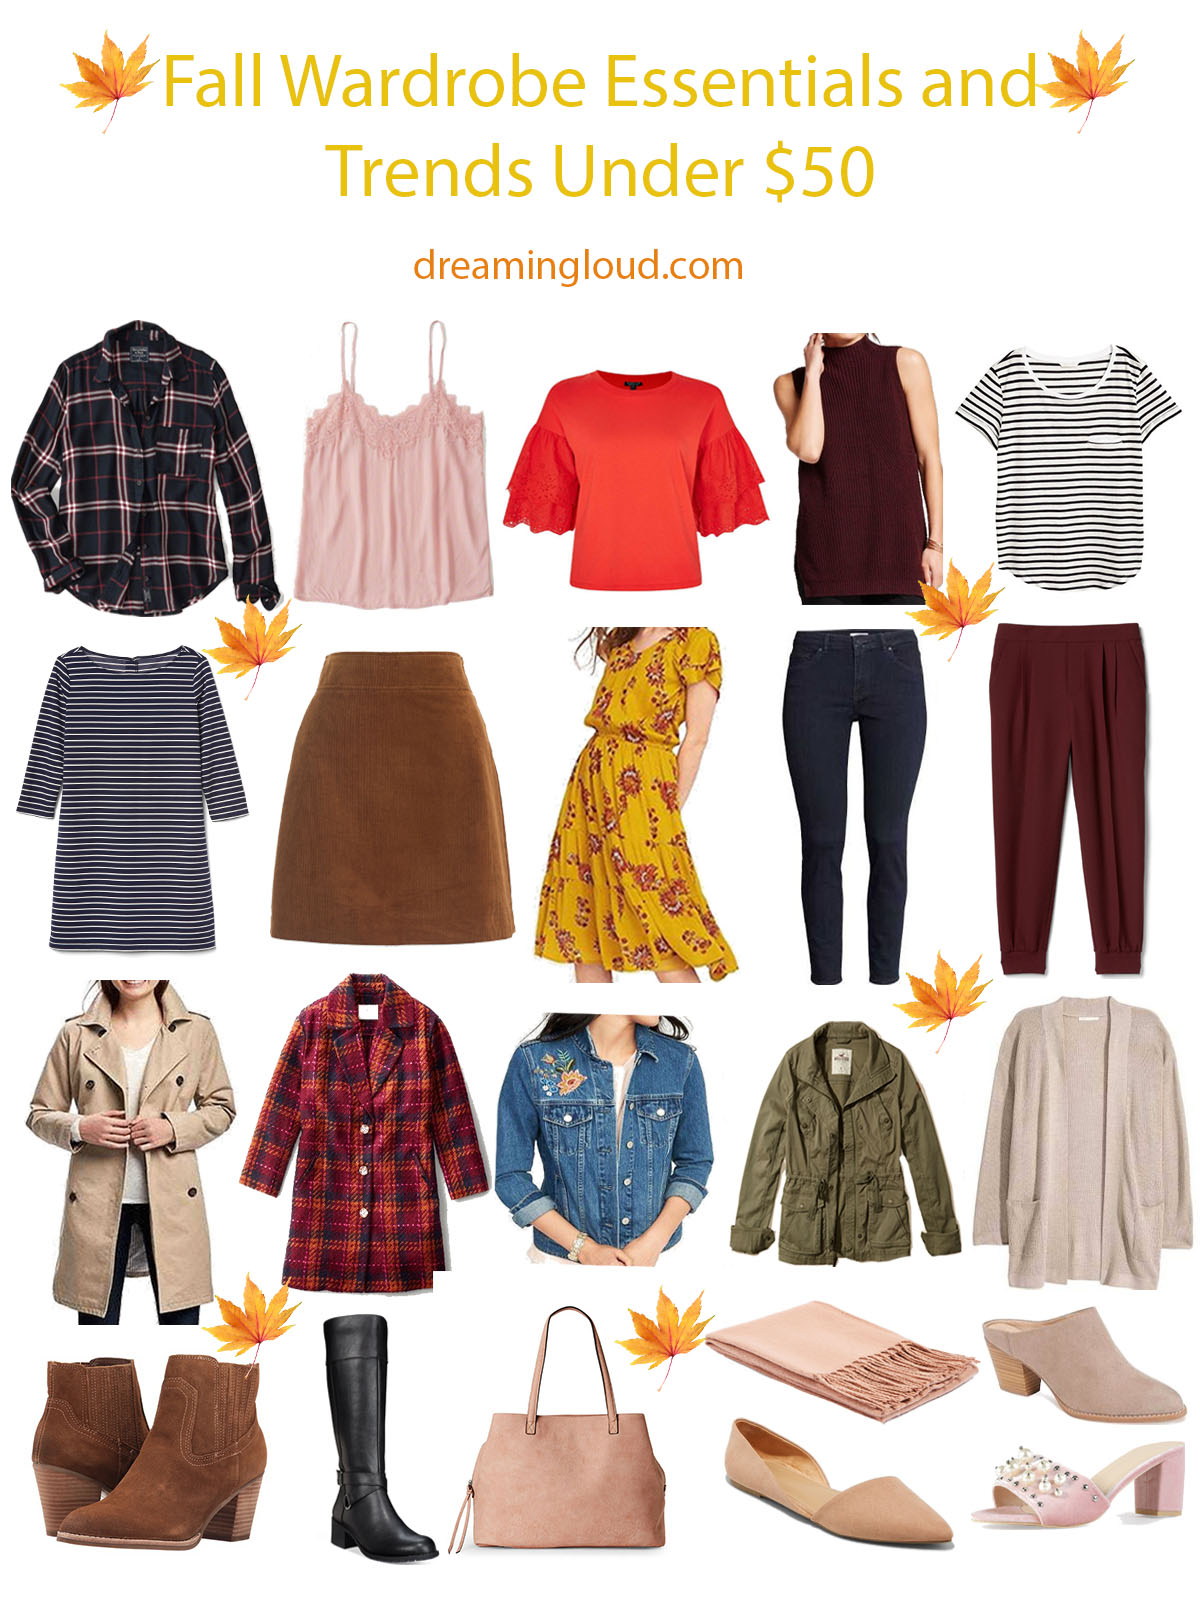 Fall-wardrobe-essentials-and-trends-2017-under-$50-dreaming-loud-1 - Fall Essentials & Trends featured by popular Ohio modest fashion blogger, Dreaming Loud